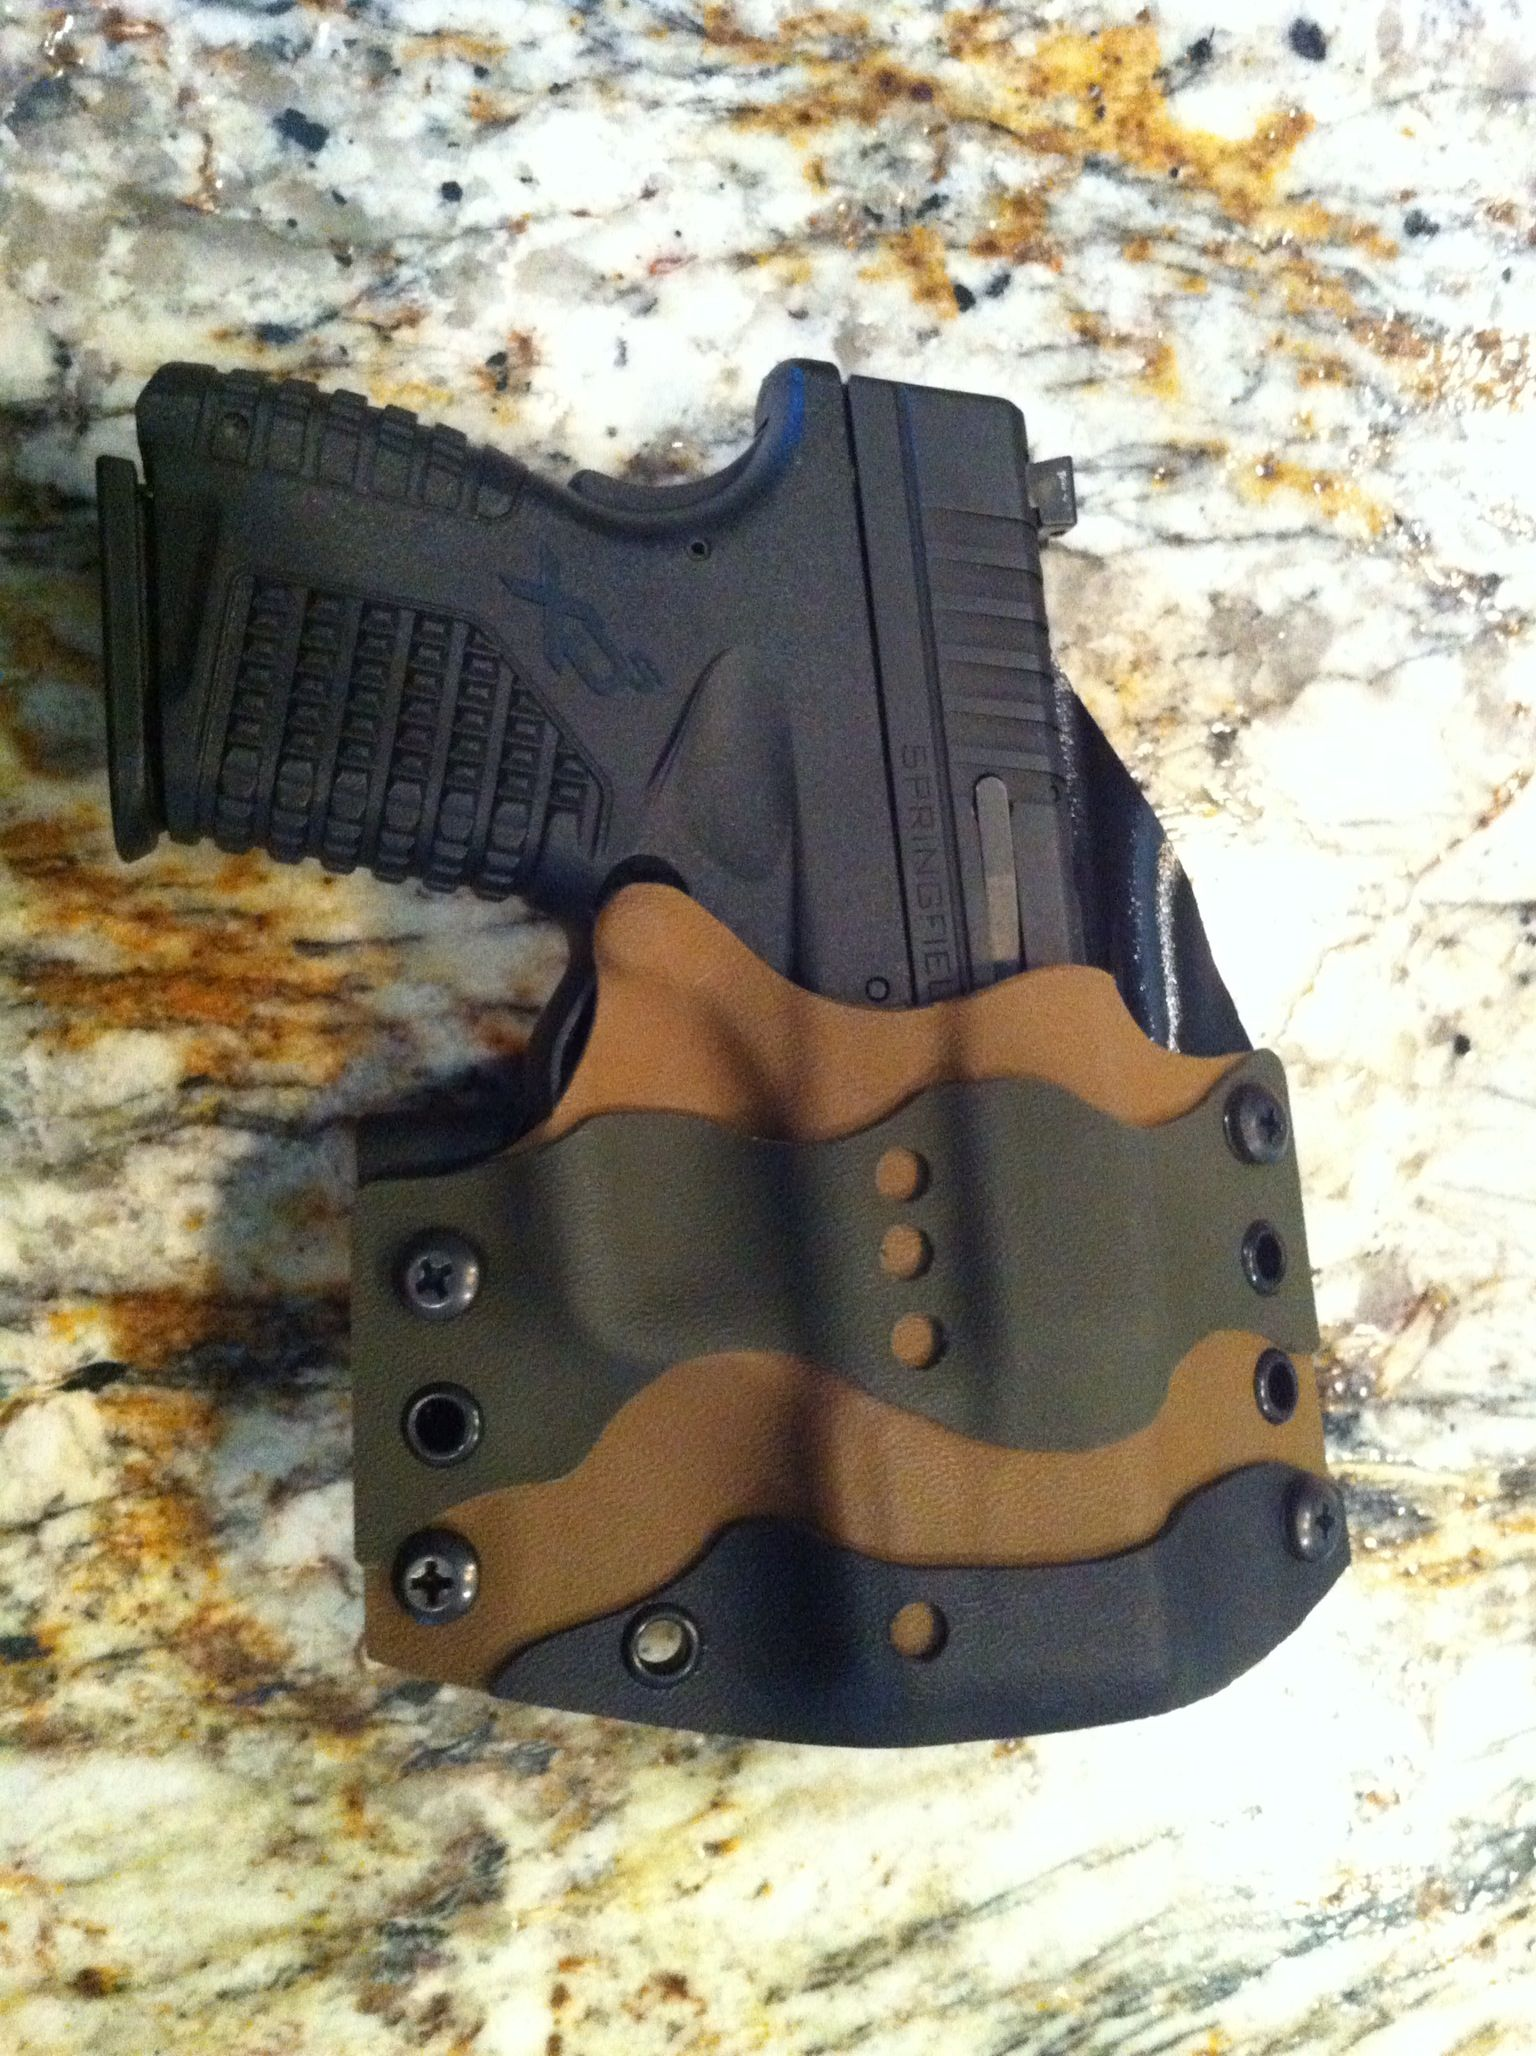 Multilayer holster.  This is a sharp design.